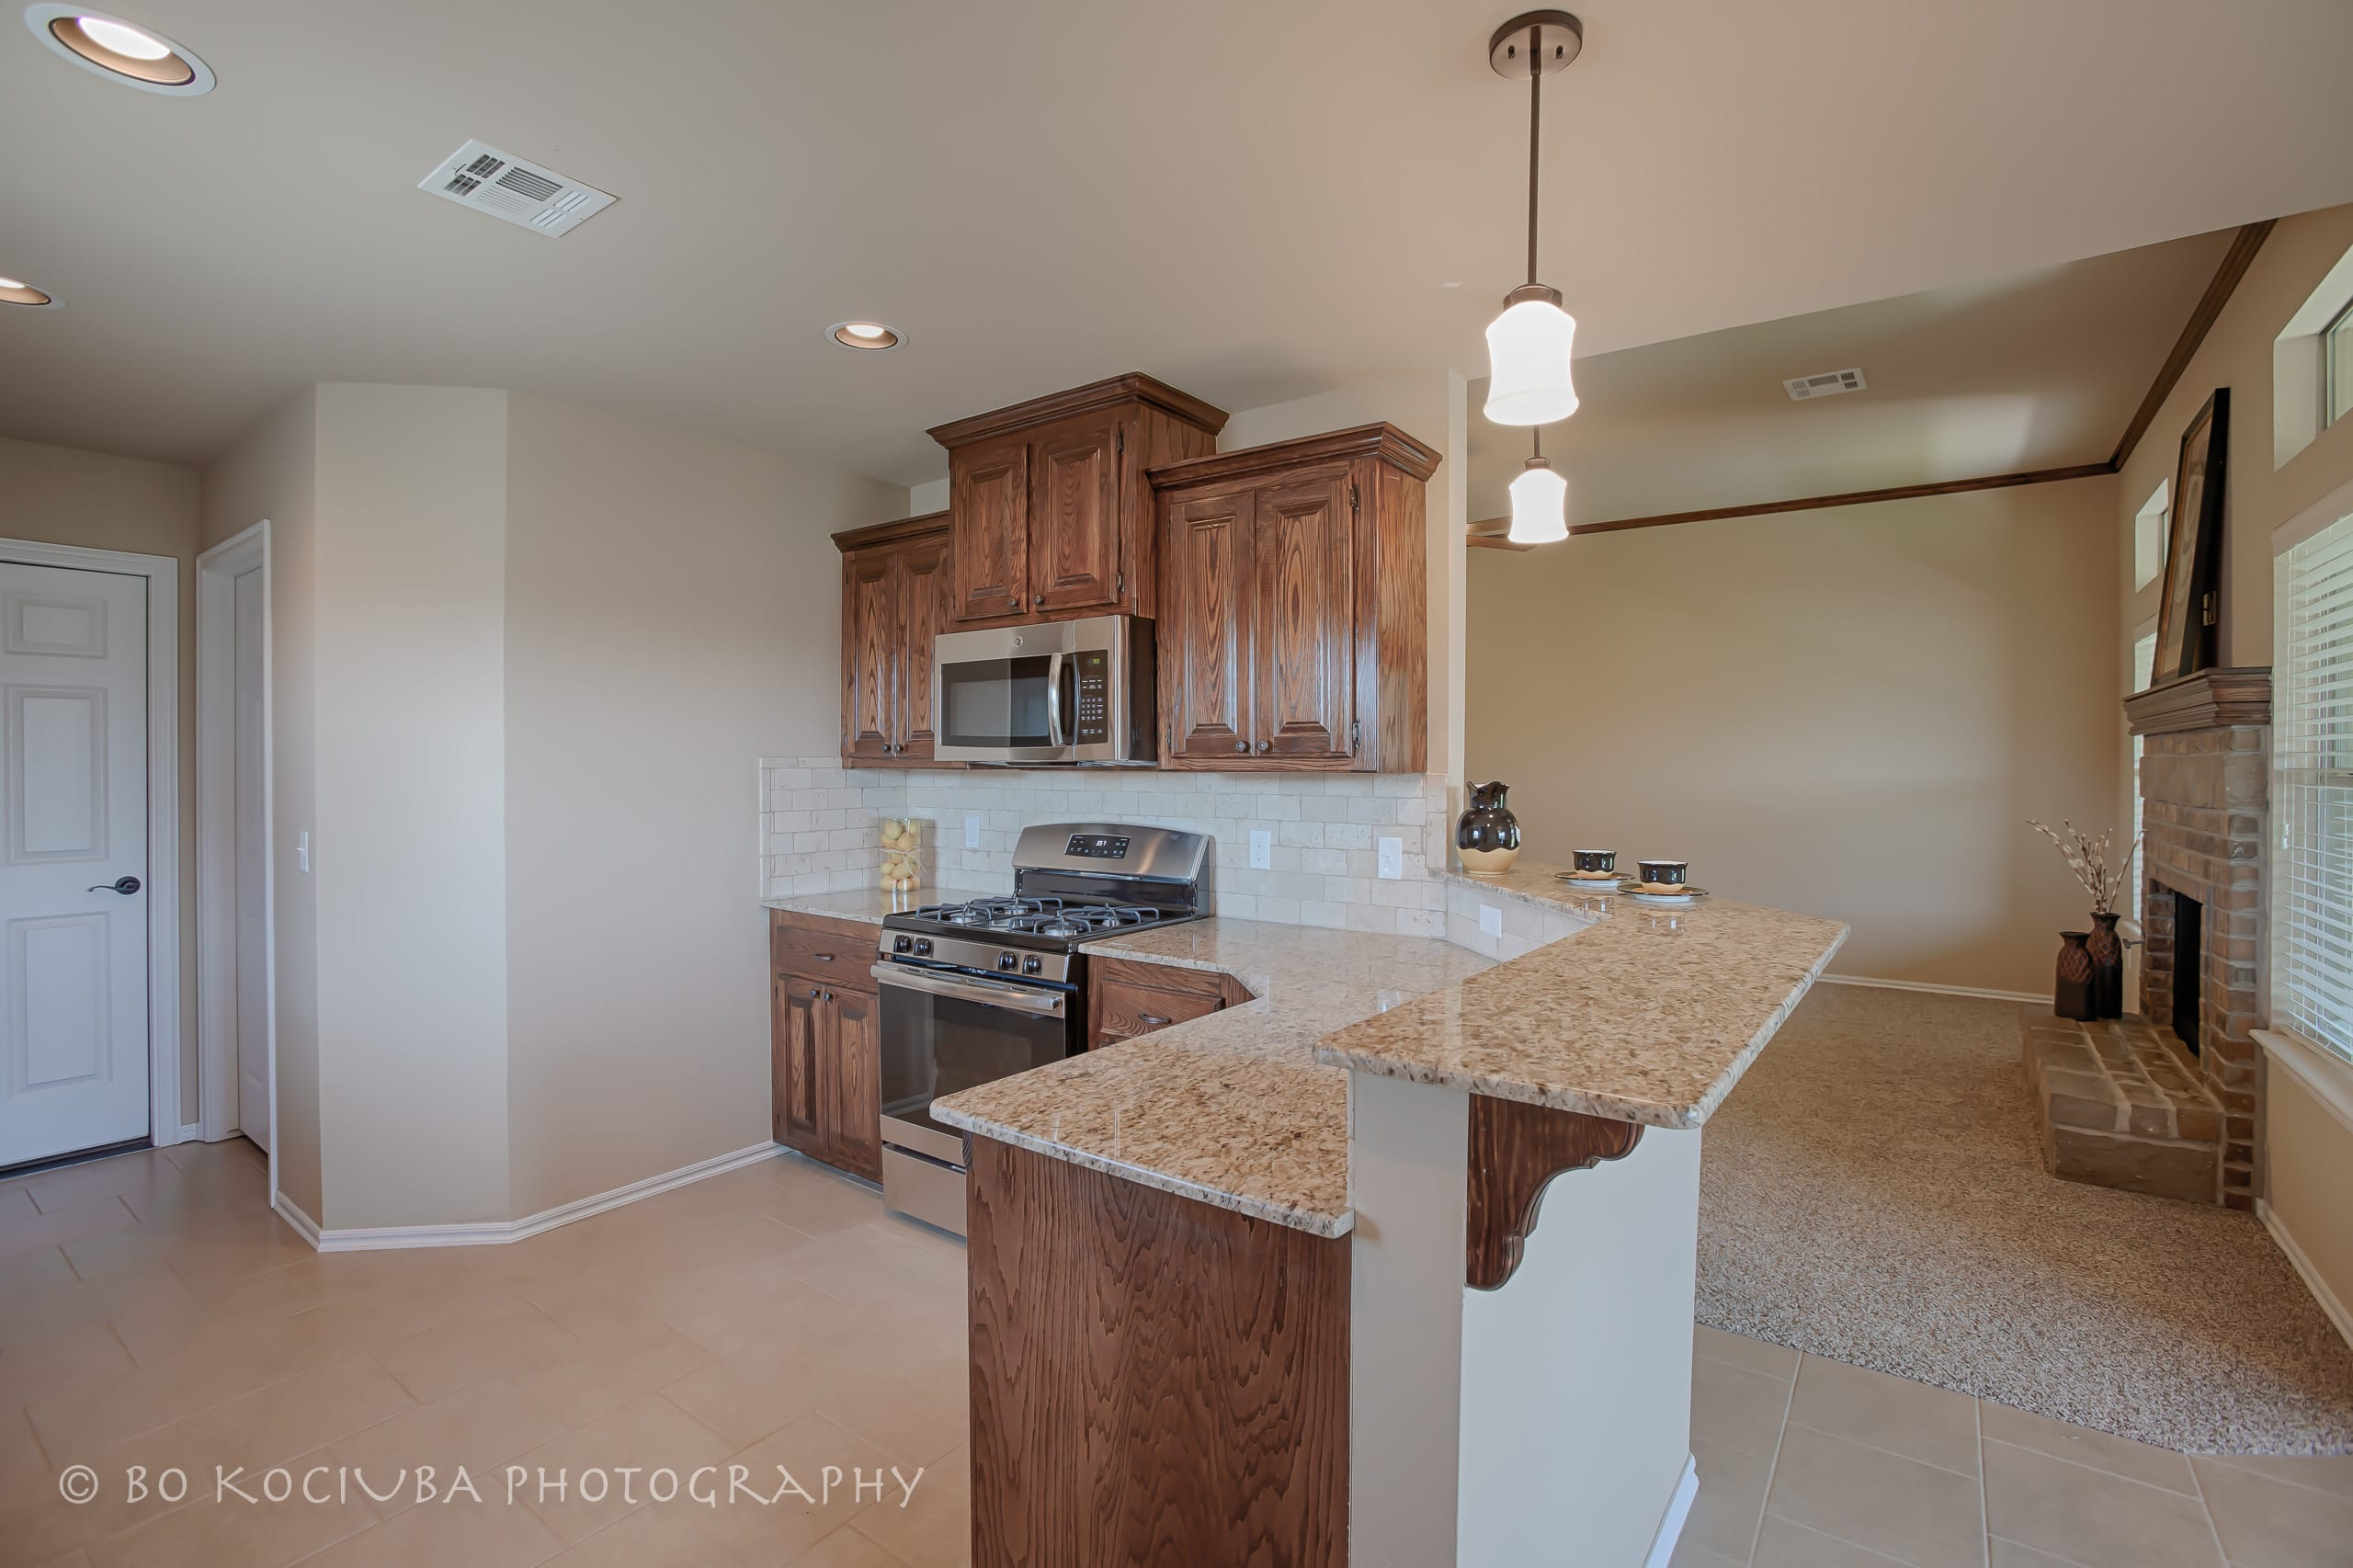 YUKON HOMES - 804 CANYON DR - RIVER MESA